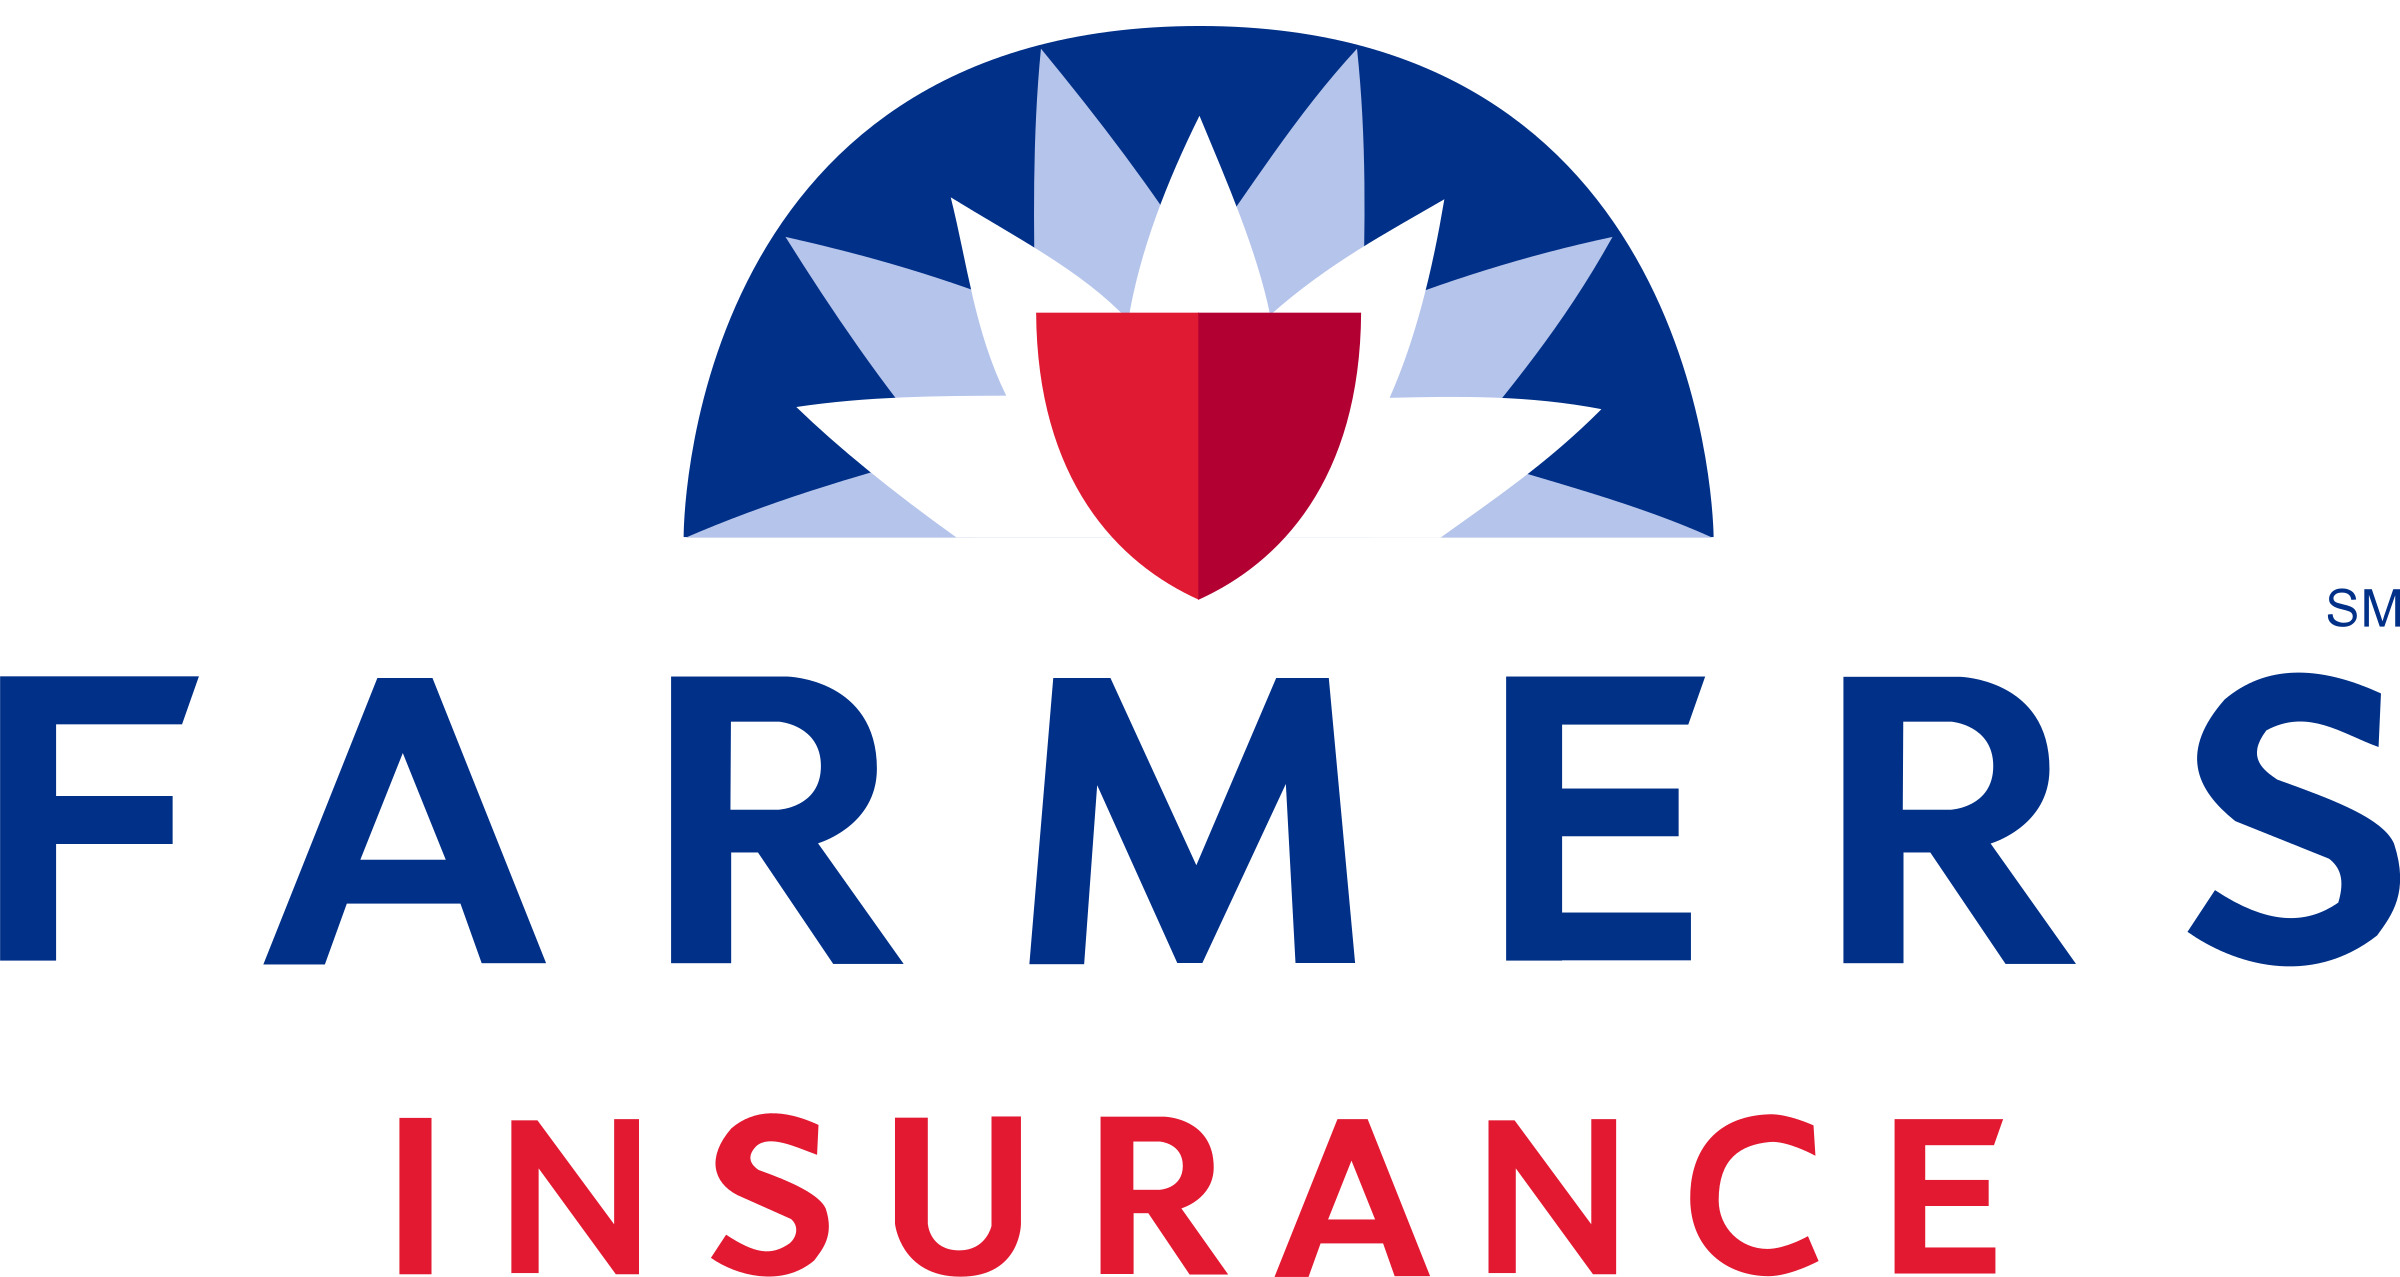 farmers-insurance-3-logo-png-transparent